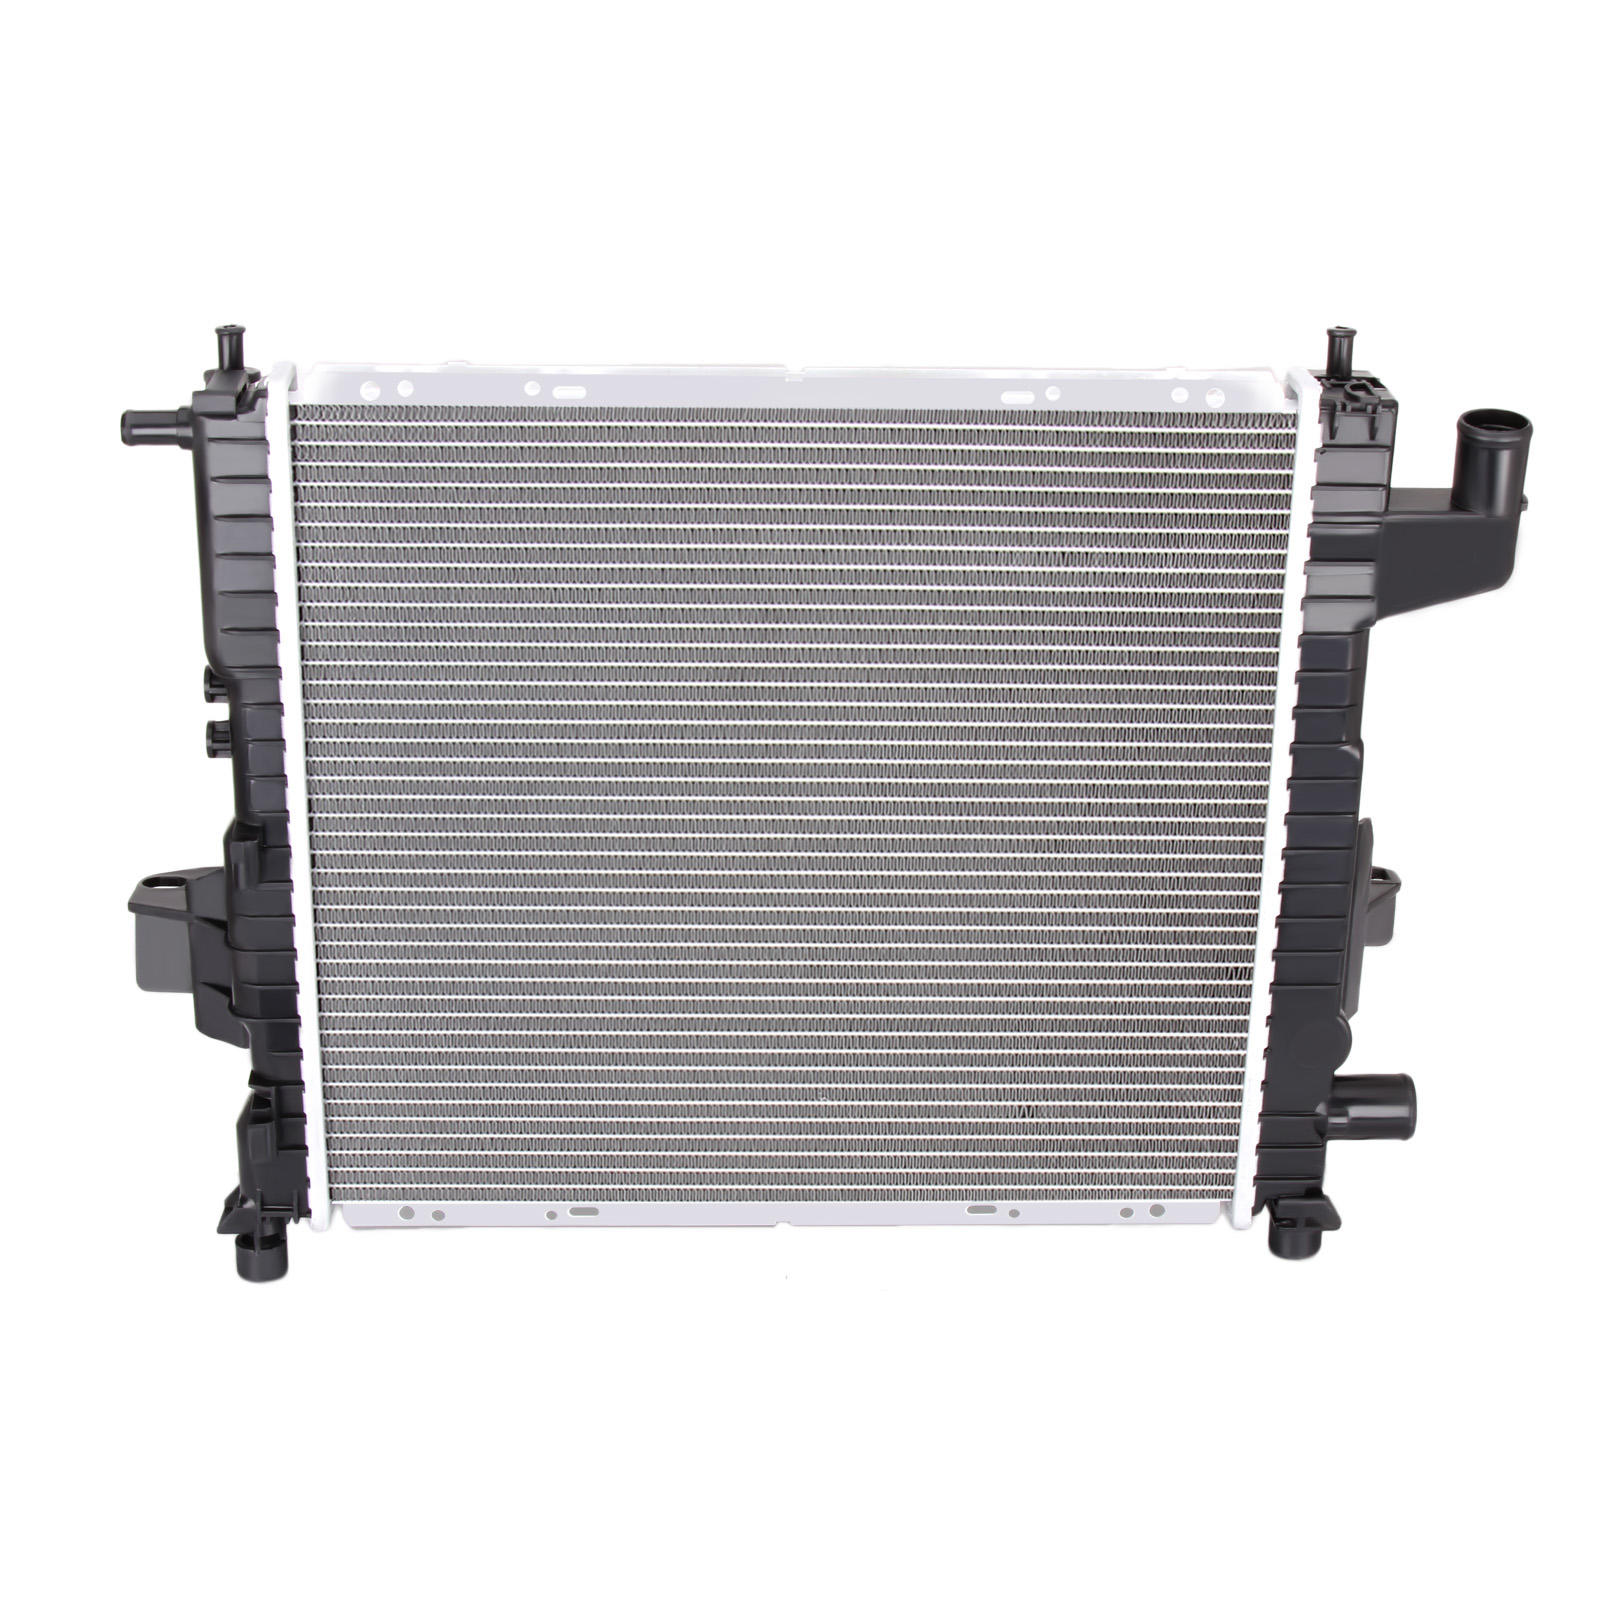 Auto Radiator for Renault Twingo C06 Hatchback 1.2  1.2 16V Petrol Manual New